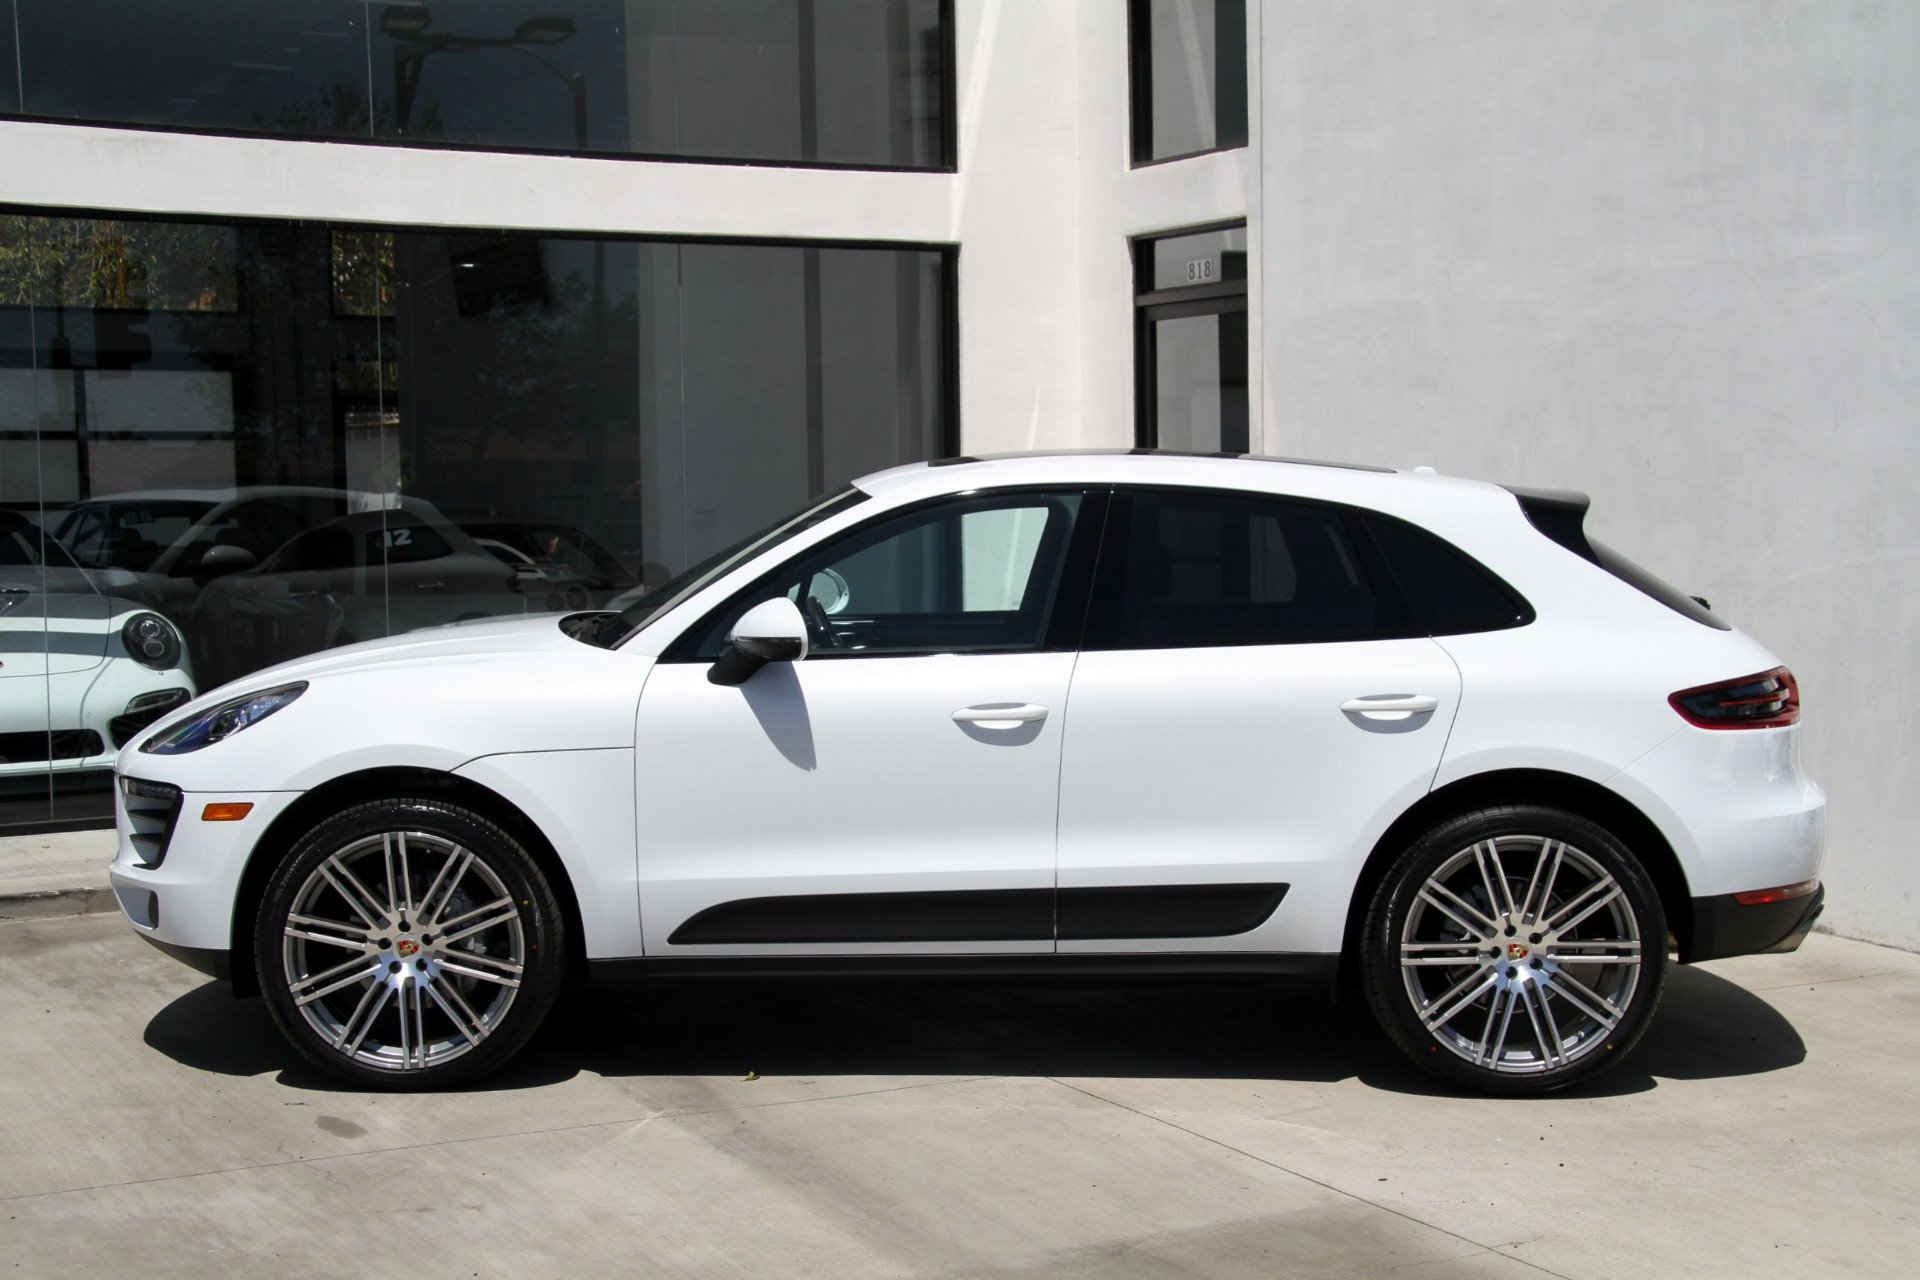 New 2019 Porsche-Macan S Macan S for sale $58,600 at M and V Leasing in Brooklyn NY 11223 1